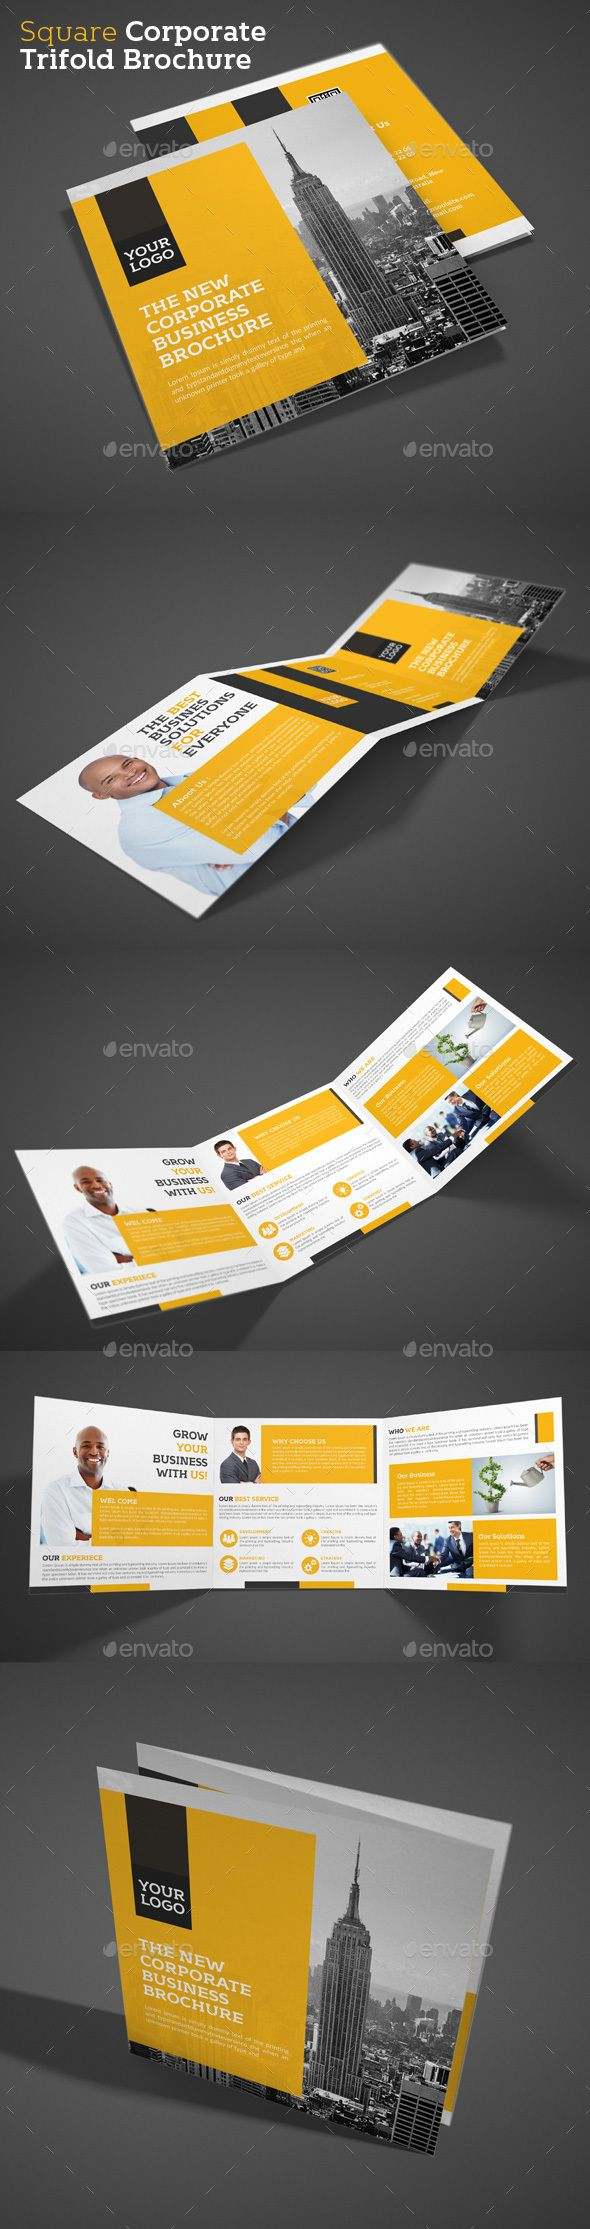 Square Corporate Trifold Brochure Template PSD Design Download - Brochure template photoshop